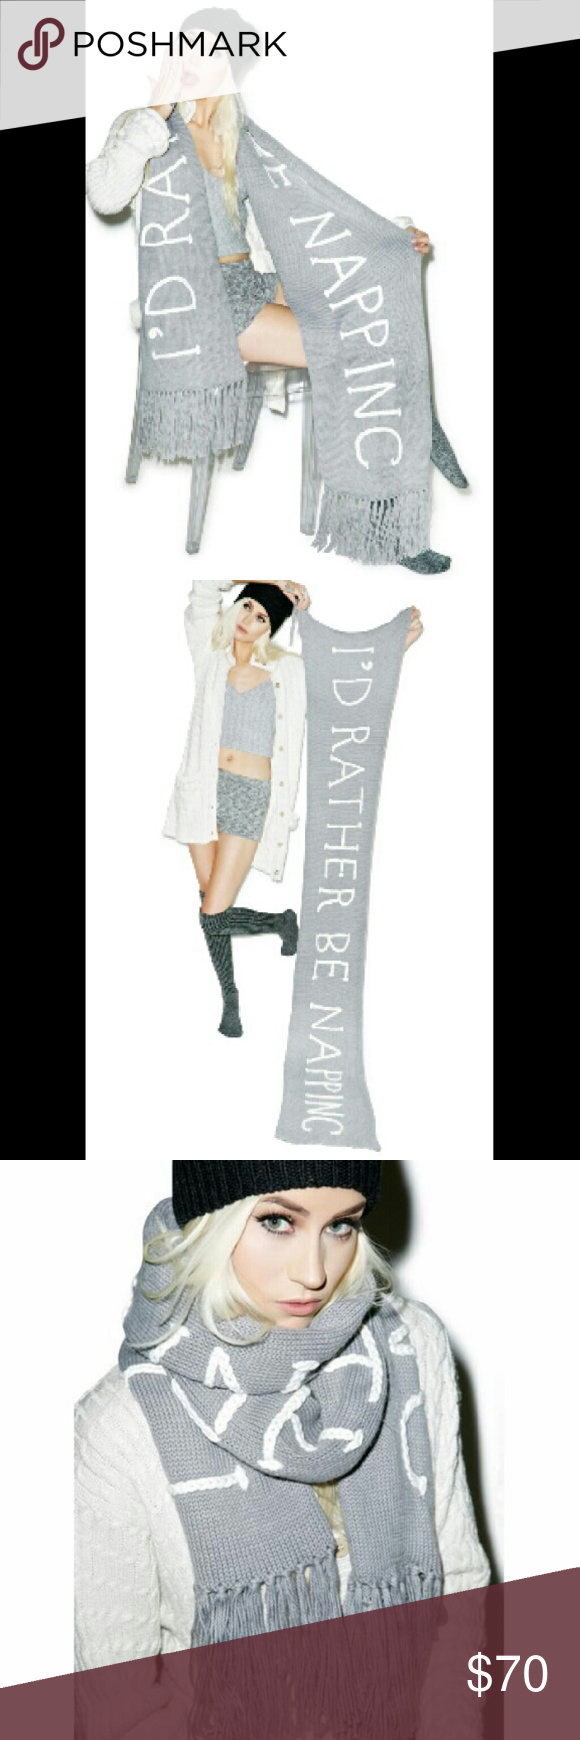 NWT Id Rather Be Napping Sleepytime Scarf Wildfox New with tags. Orginal price $88  Wildfox Couture Naptime Chainlink Scarf ...Anytime is naptime with this super long 'n' soft fringe scarf! Wrap it round ya 'n' catch some low-key ZZZs, BB.?  Materials: 70% Acrylic, 15% Nylon, 8% Wool, Polyester, 7% Alpaca Hand Wash Cold, Hang Dry Our doll wears O/S and is 5'7 Wildfox Accessories Scarves & Wraps